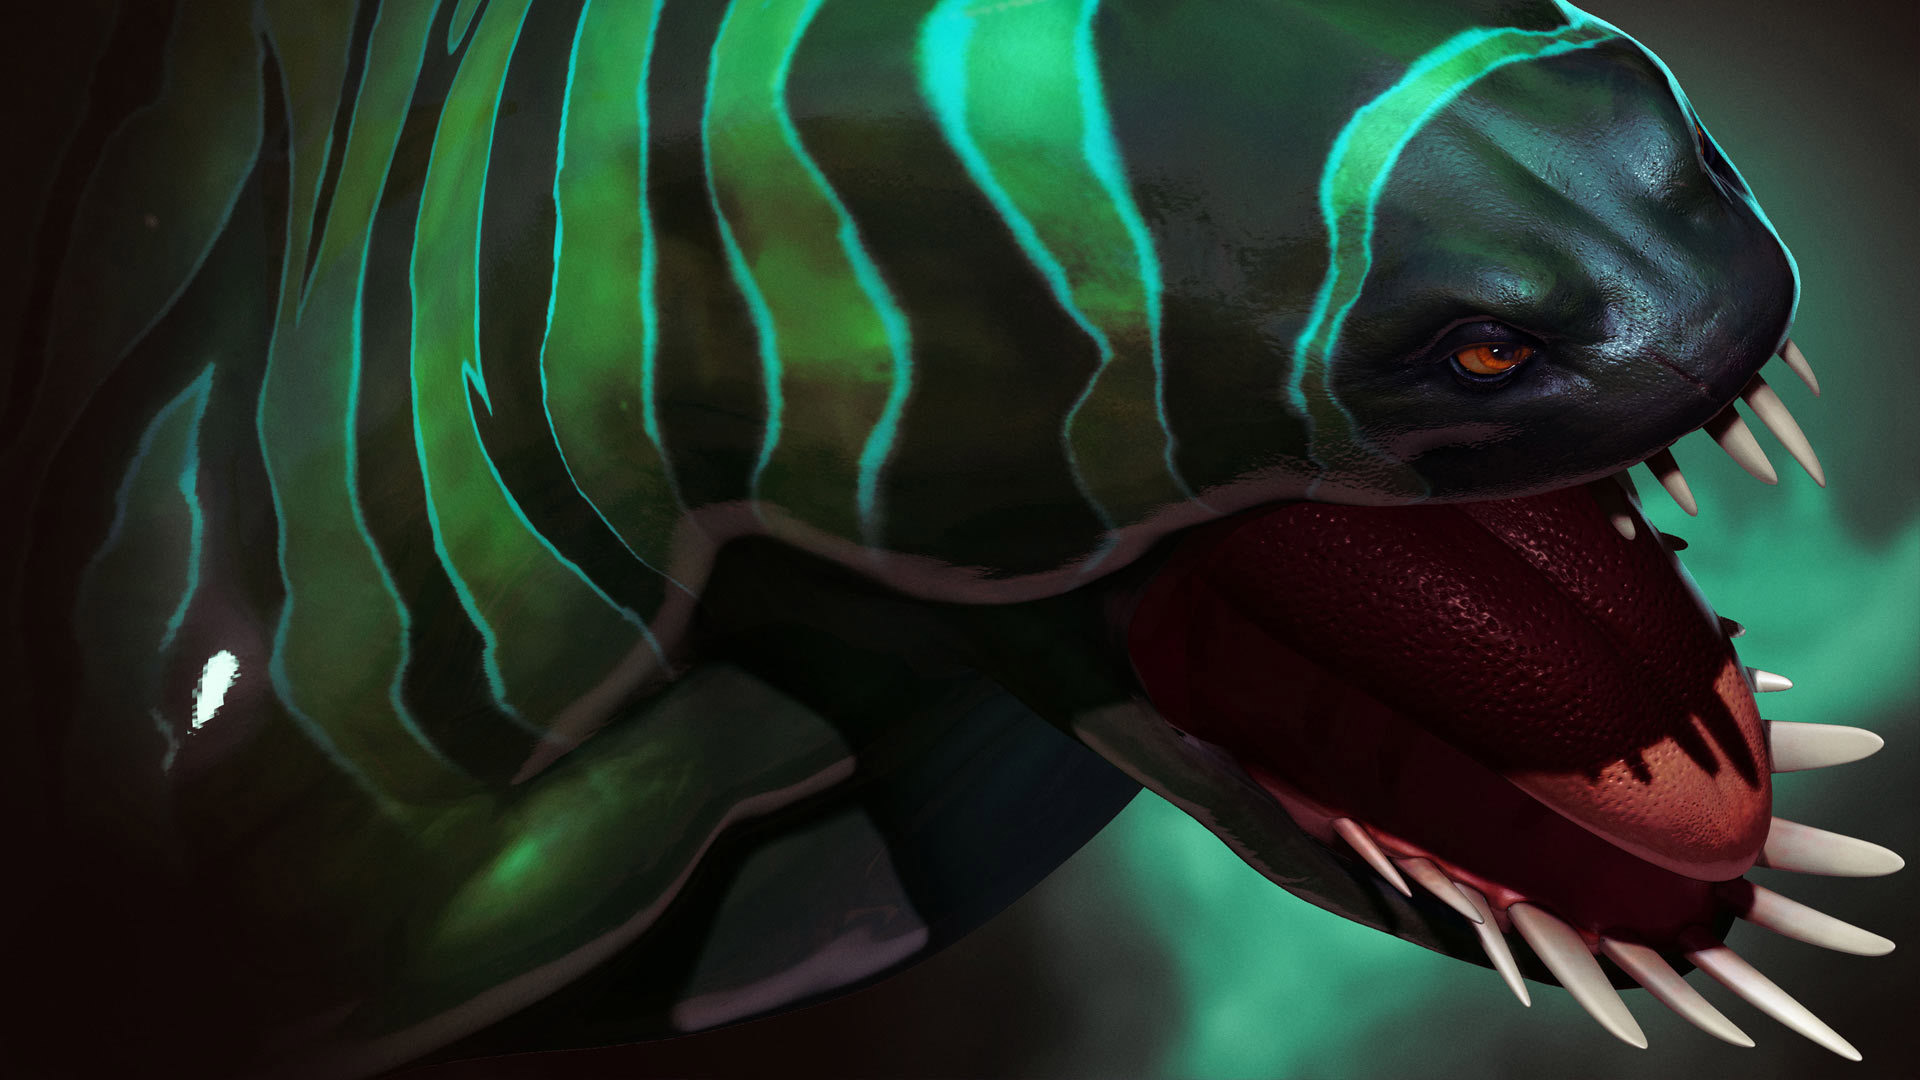 Free Dota 2 Wallpaper in 1920x1080